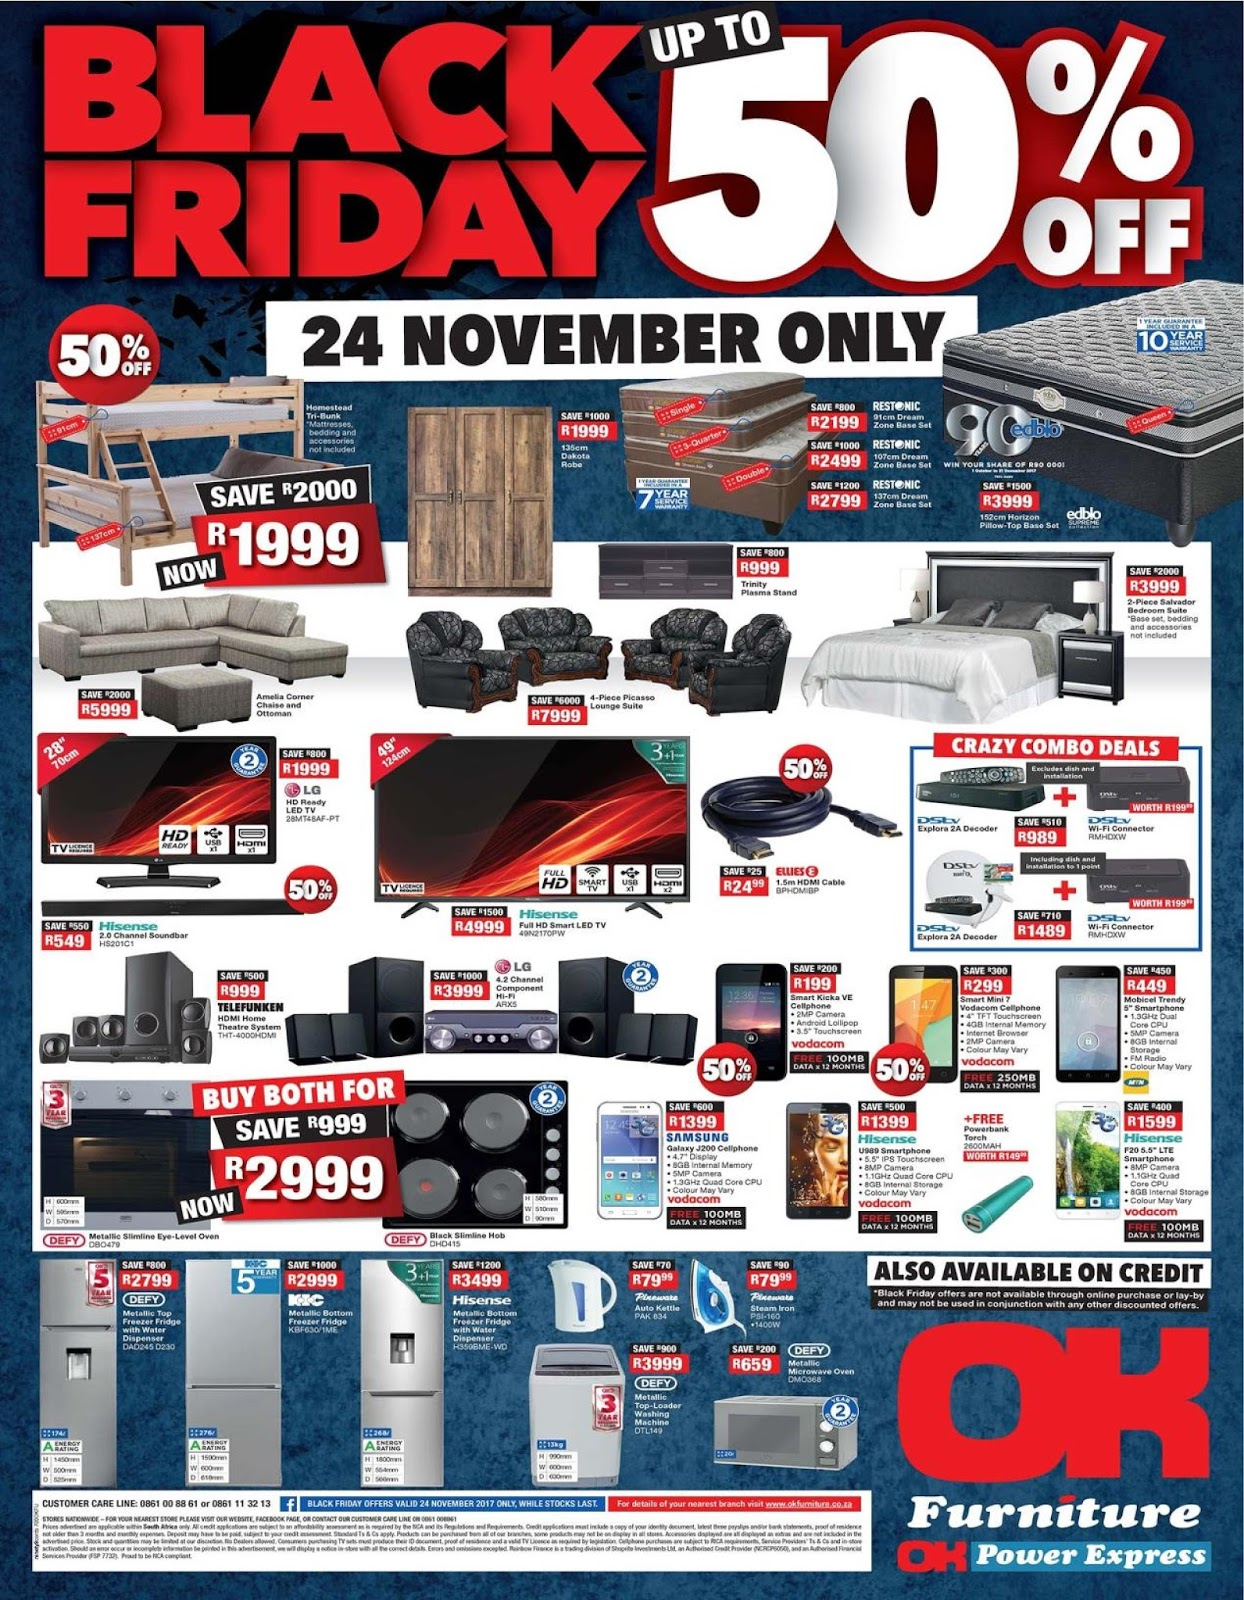 Blackfriday Ok Furniture Black Friday Deals Prices